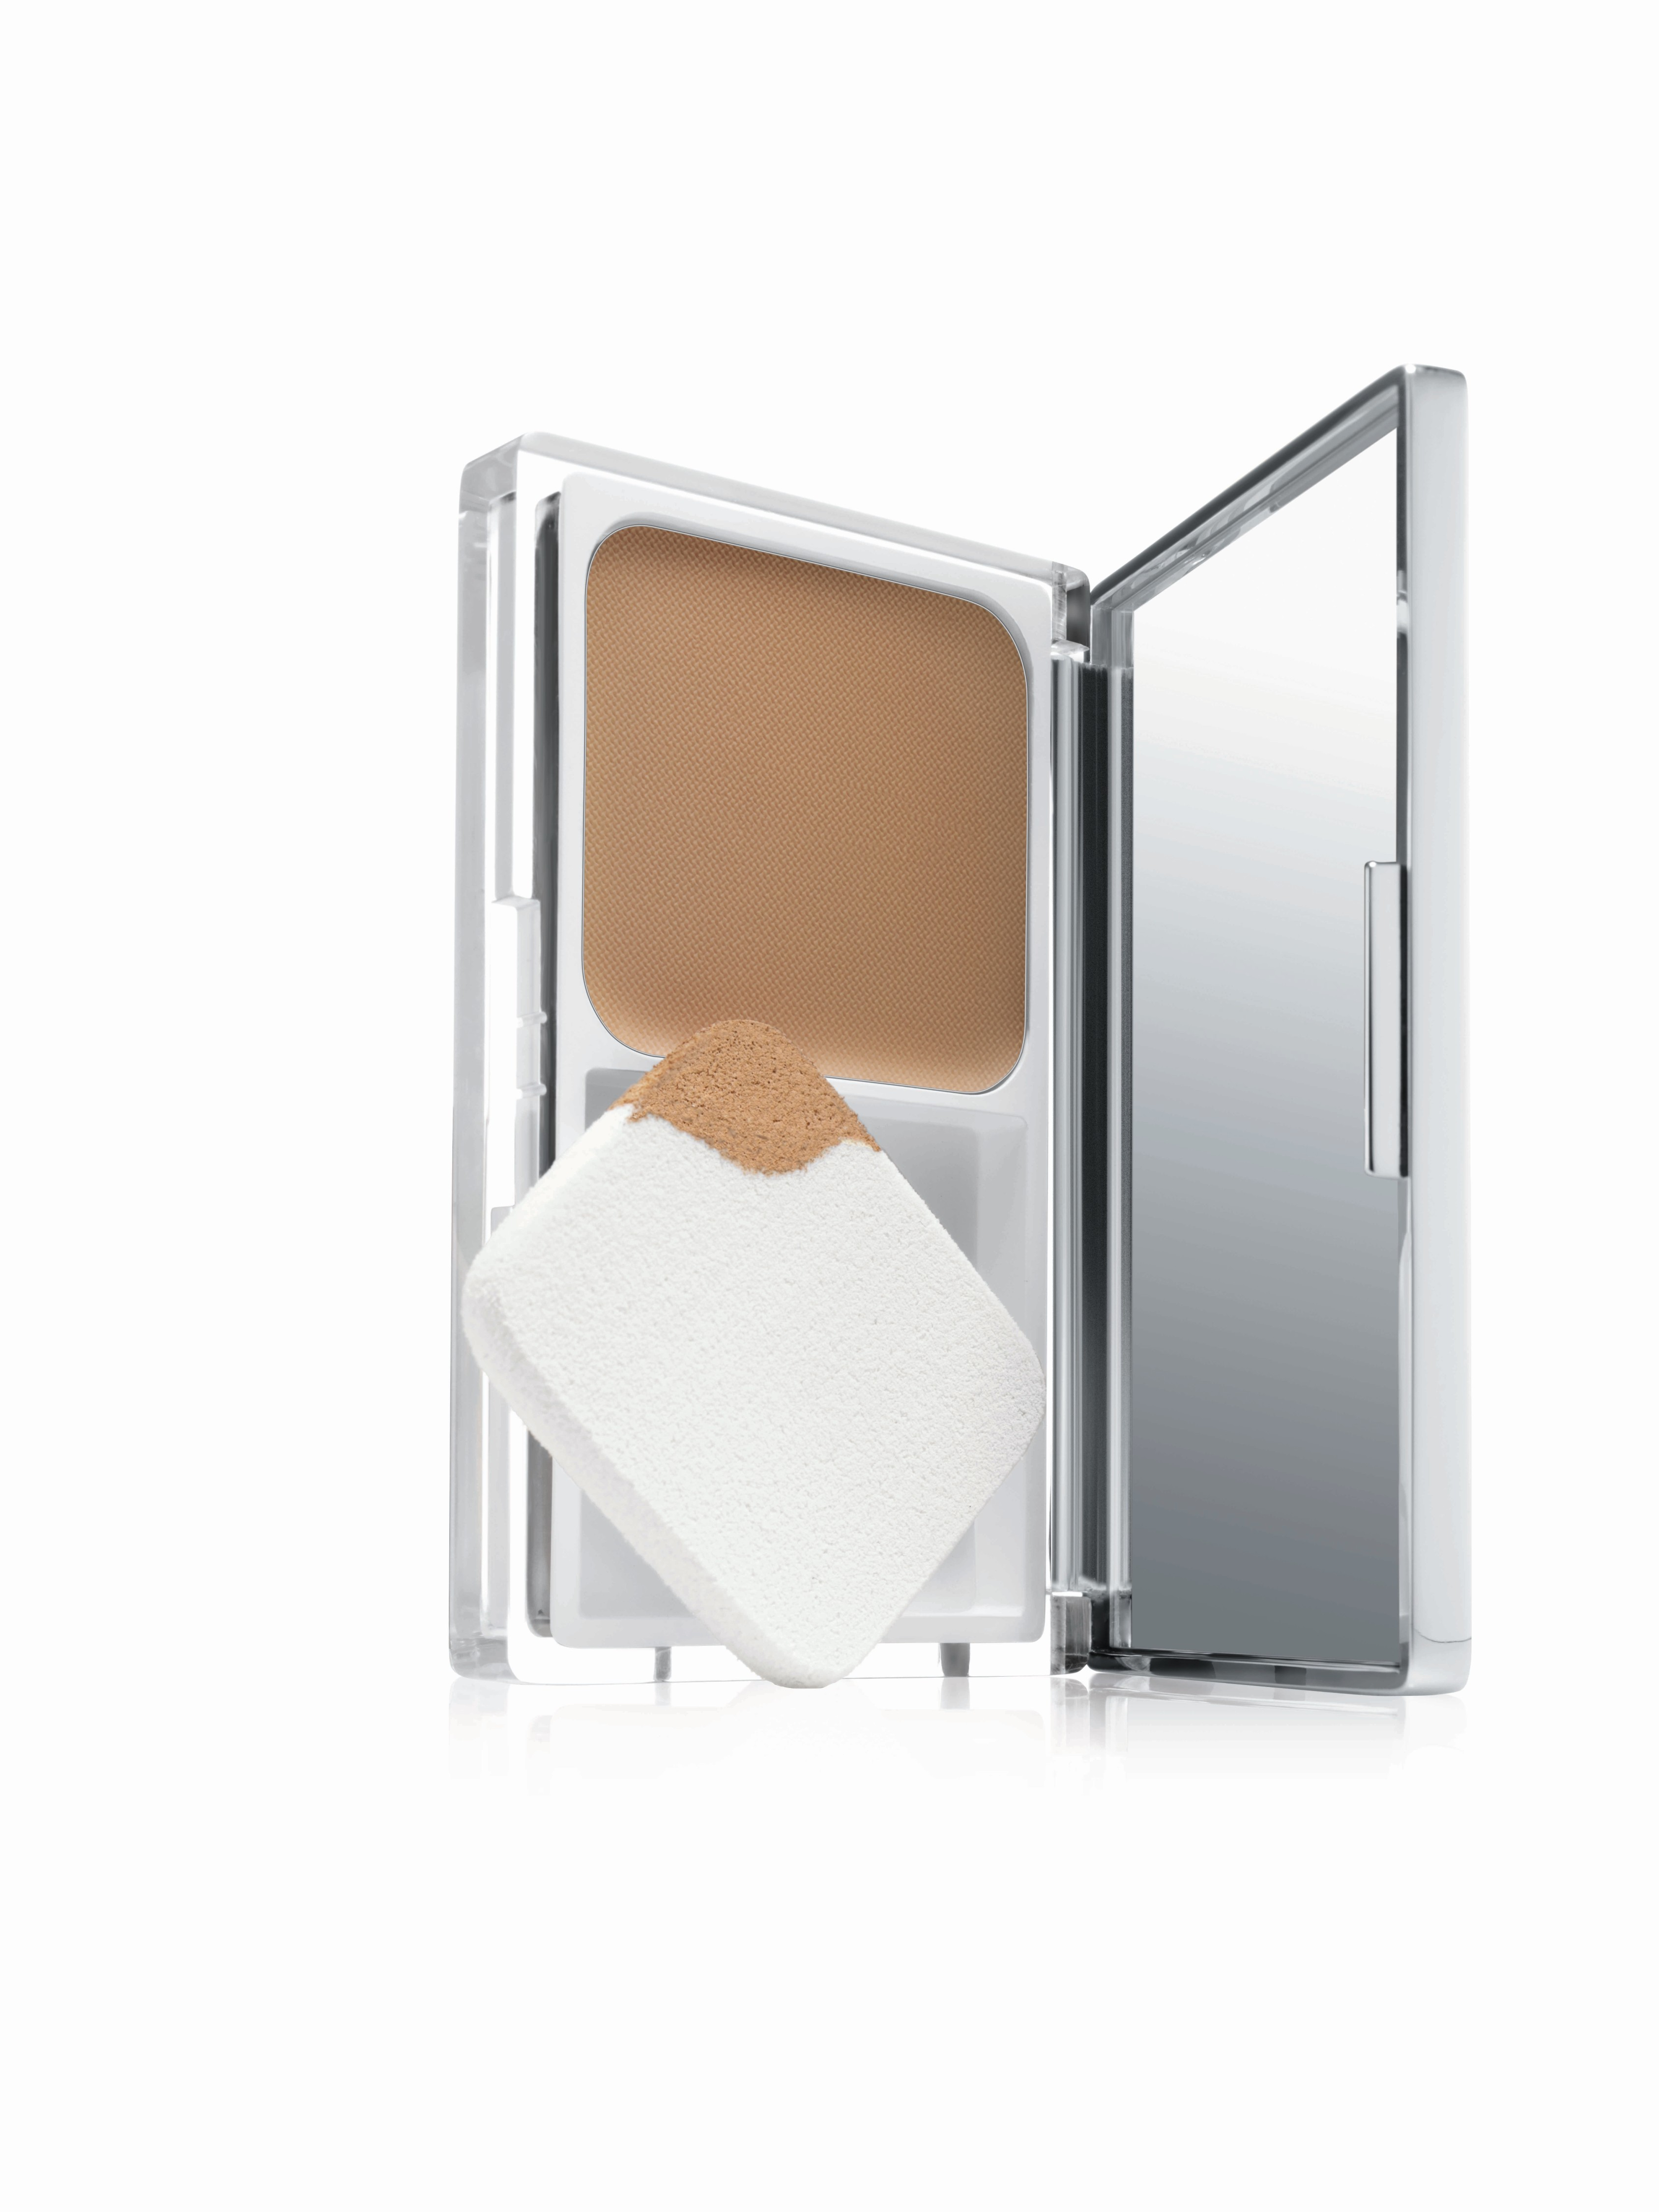 New Anti-Blemish Solutions Powder Makeup by Clinique